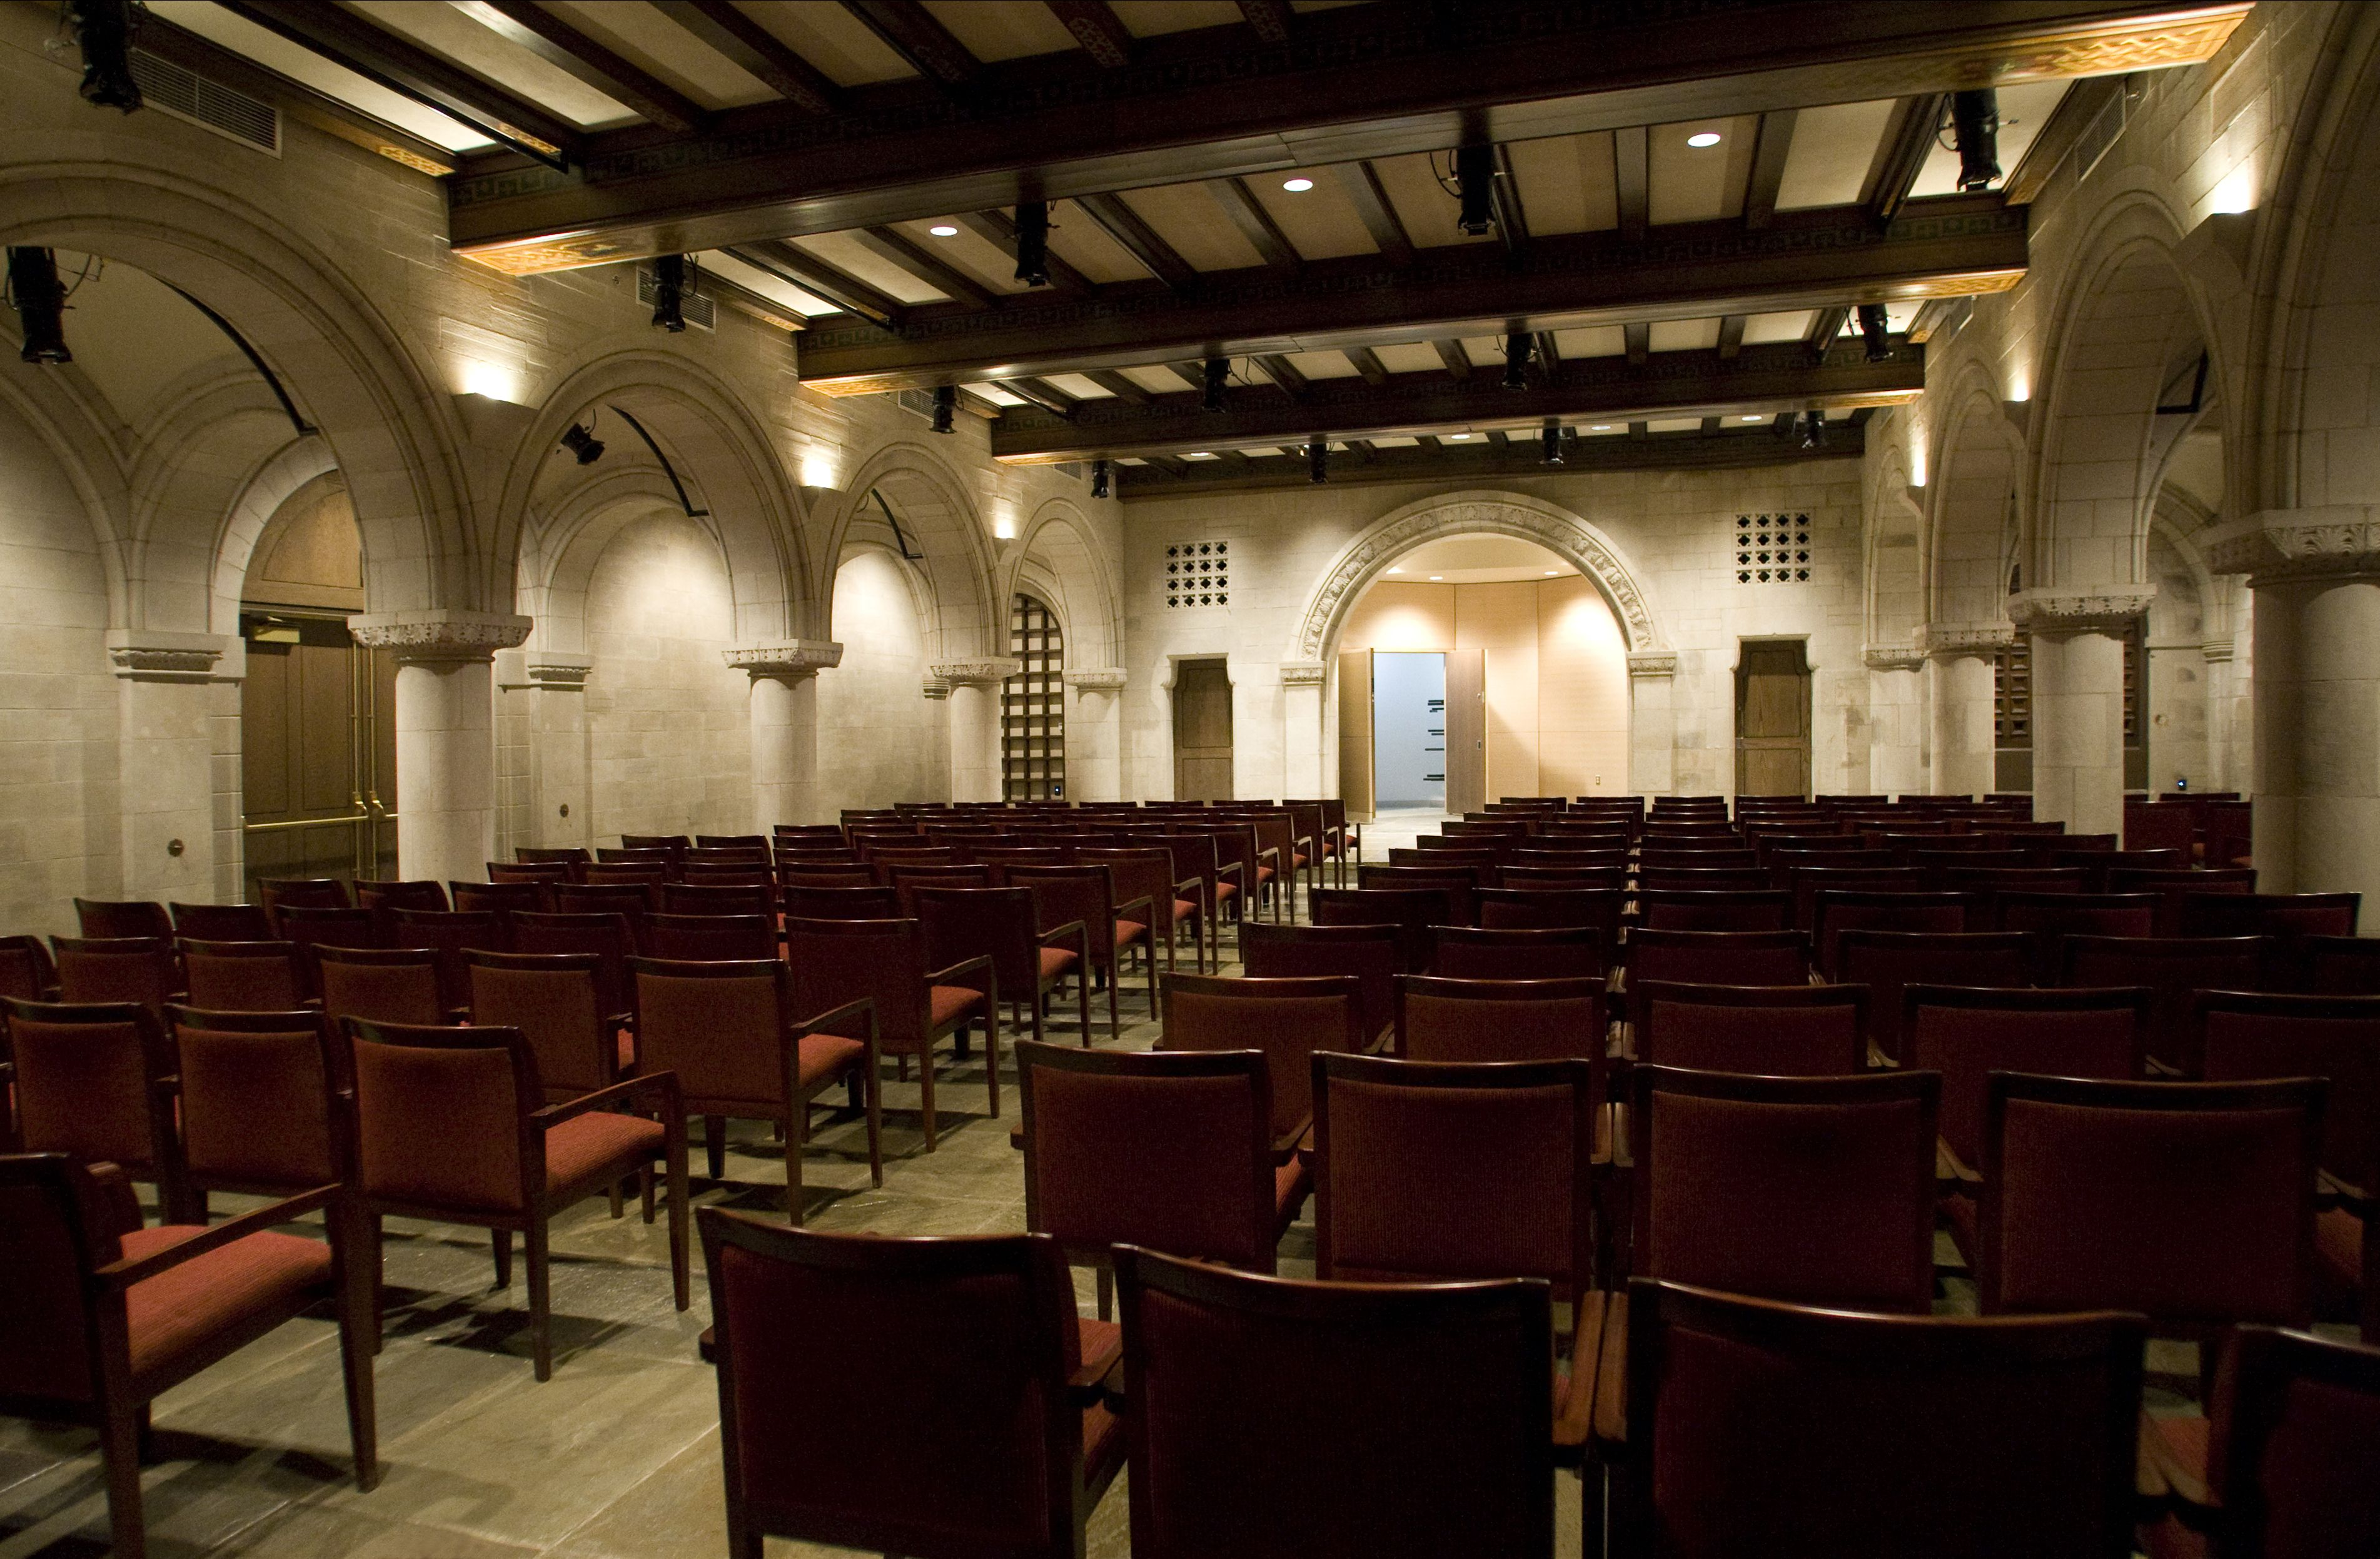 Red upholstered audience chairs set up in stone chapel with arches and small stage